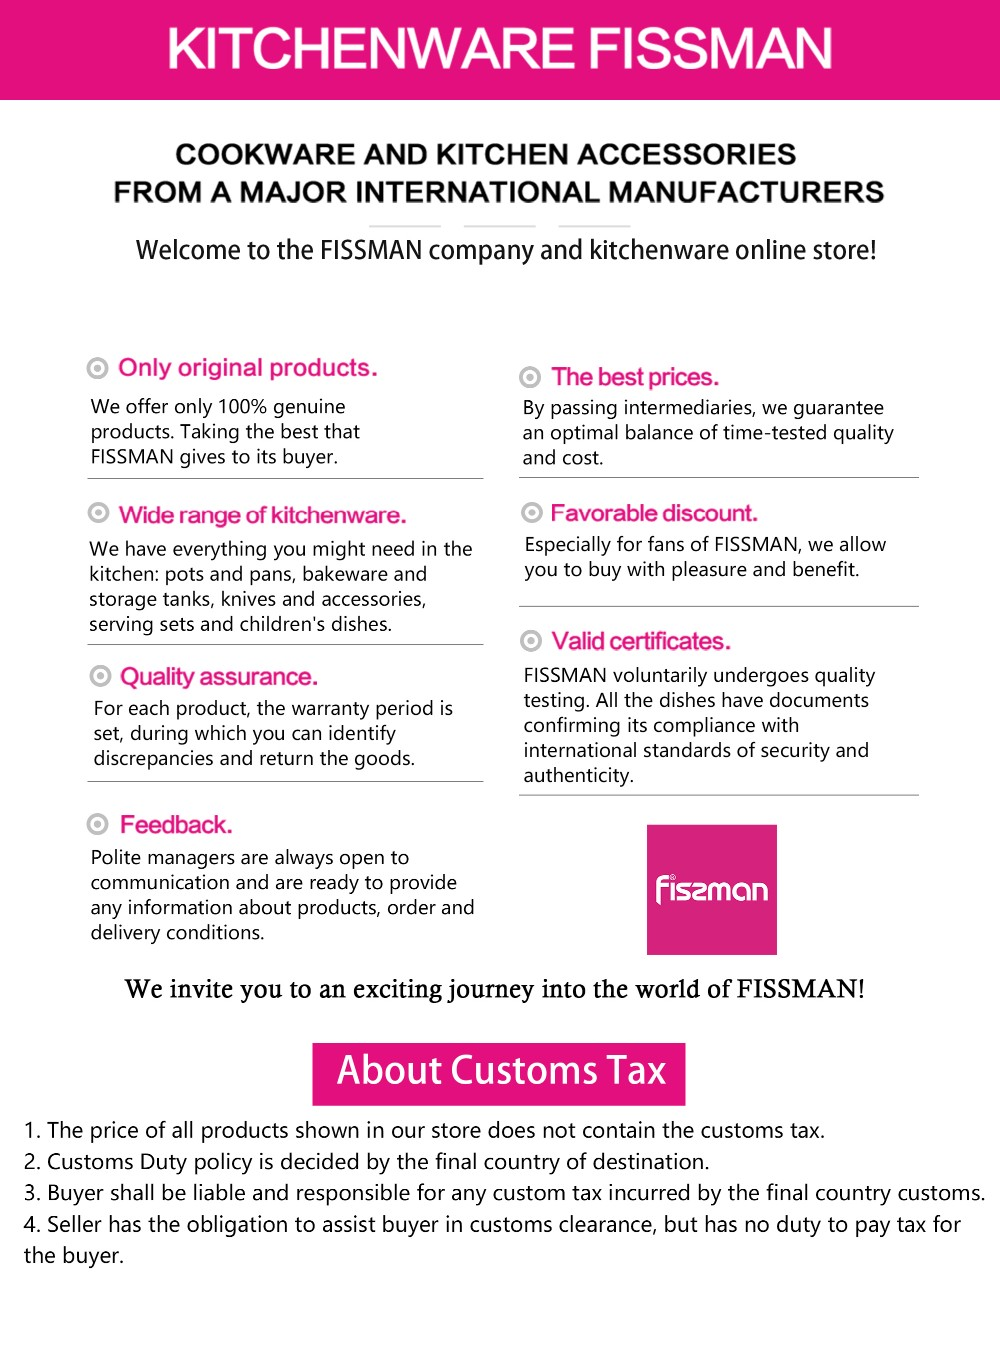 customs-tax